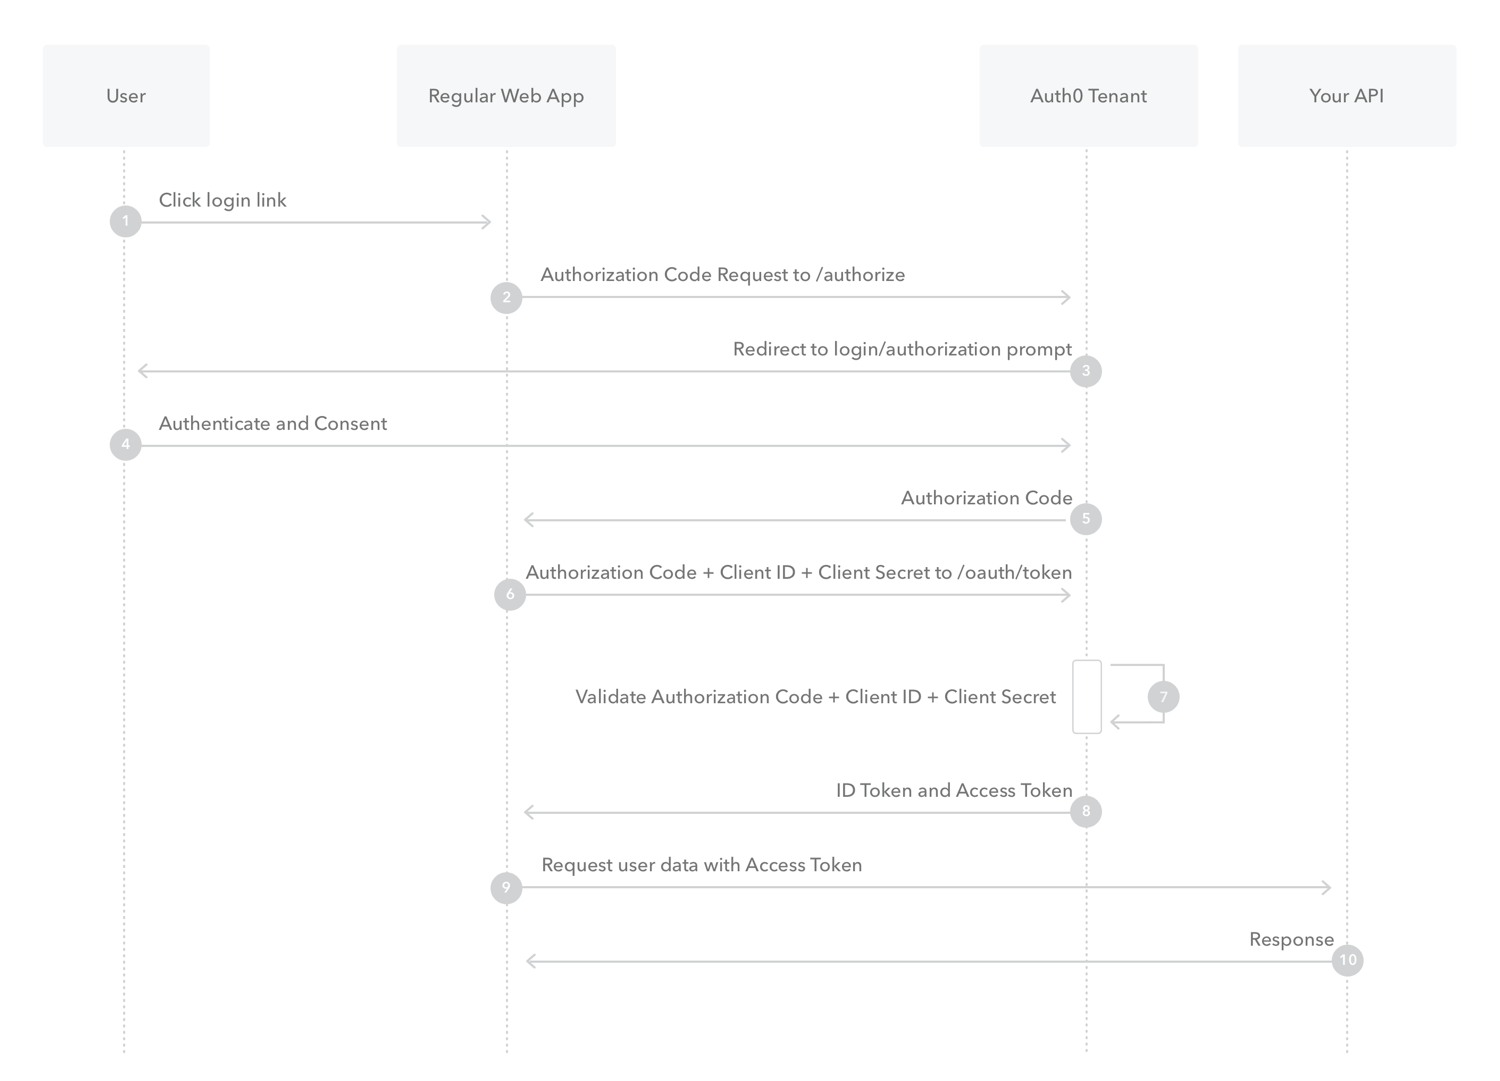 Flows - Authorization Code - Authorization sequence diagram